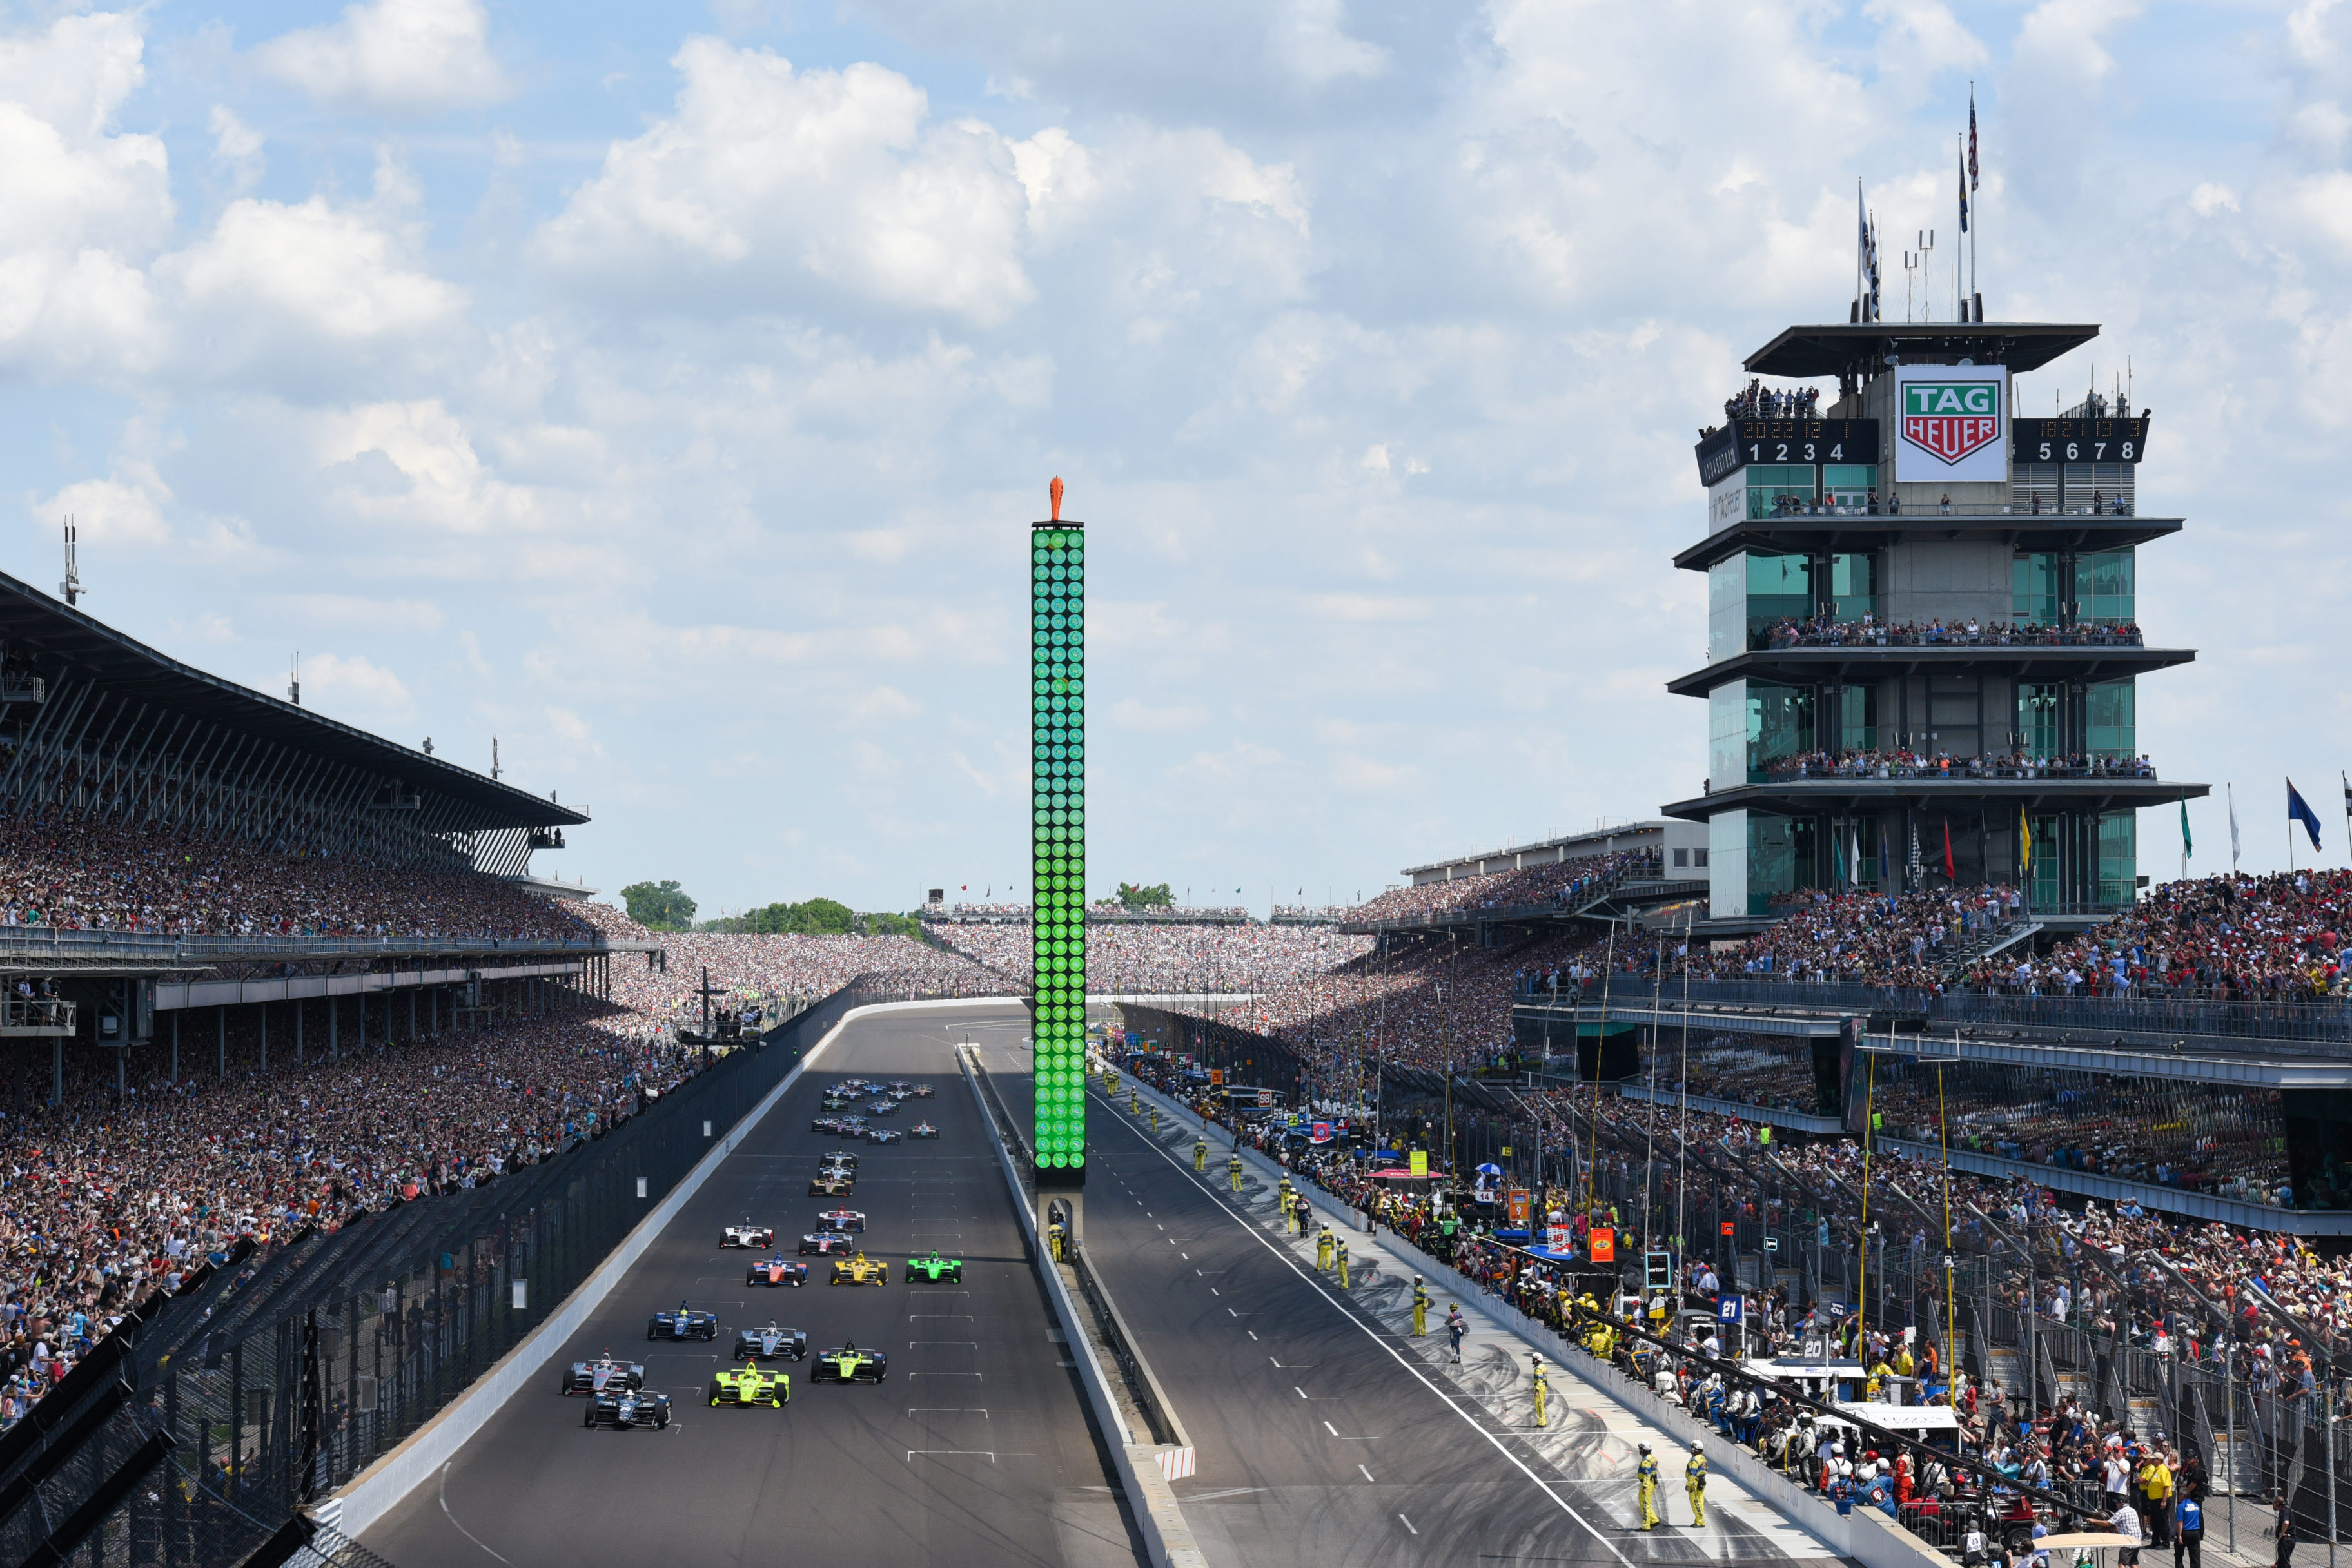 2018 Indy 500 start - Verizon Indycar Series